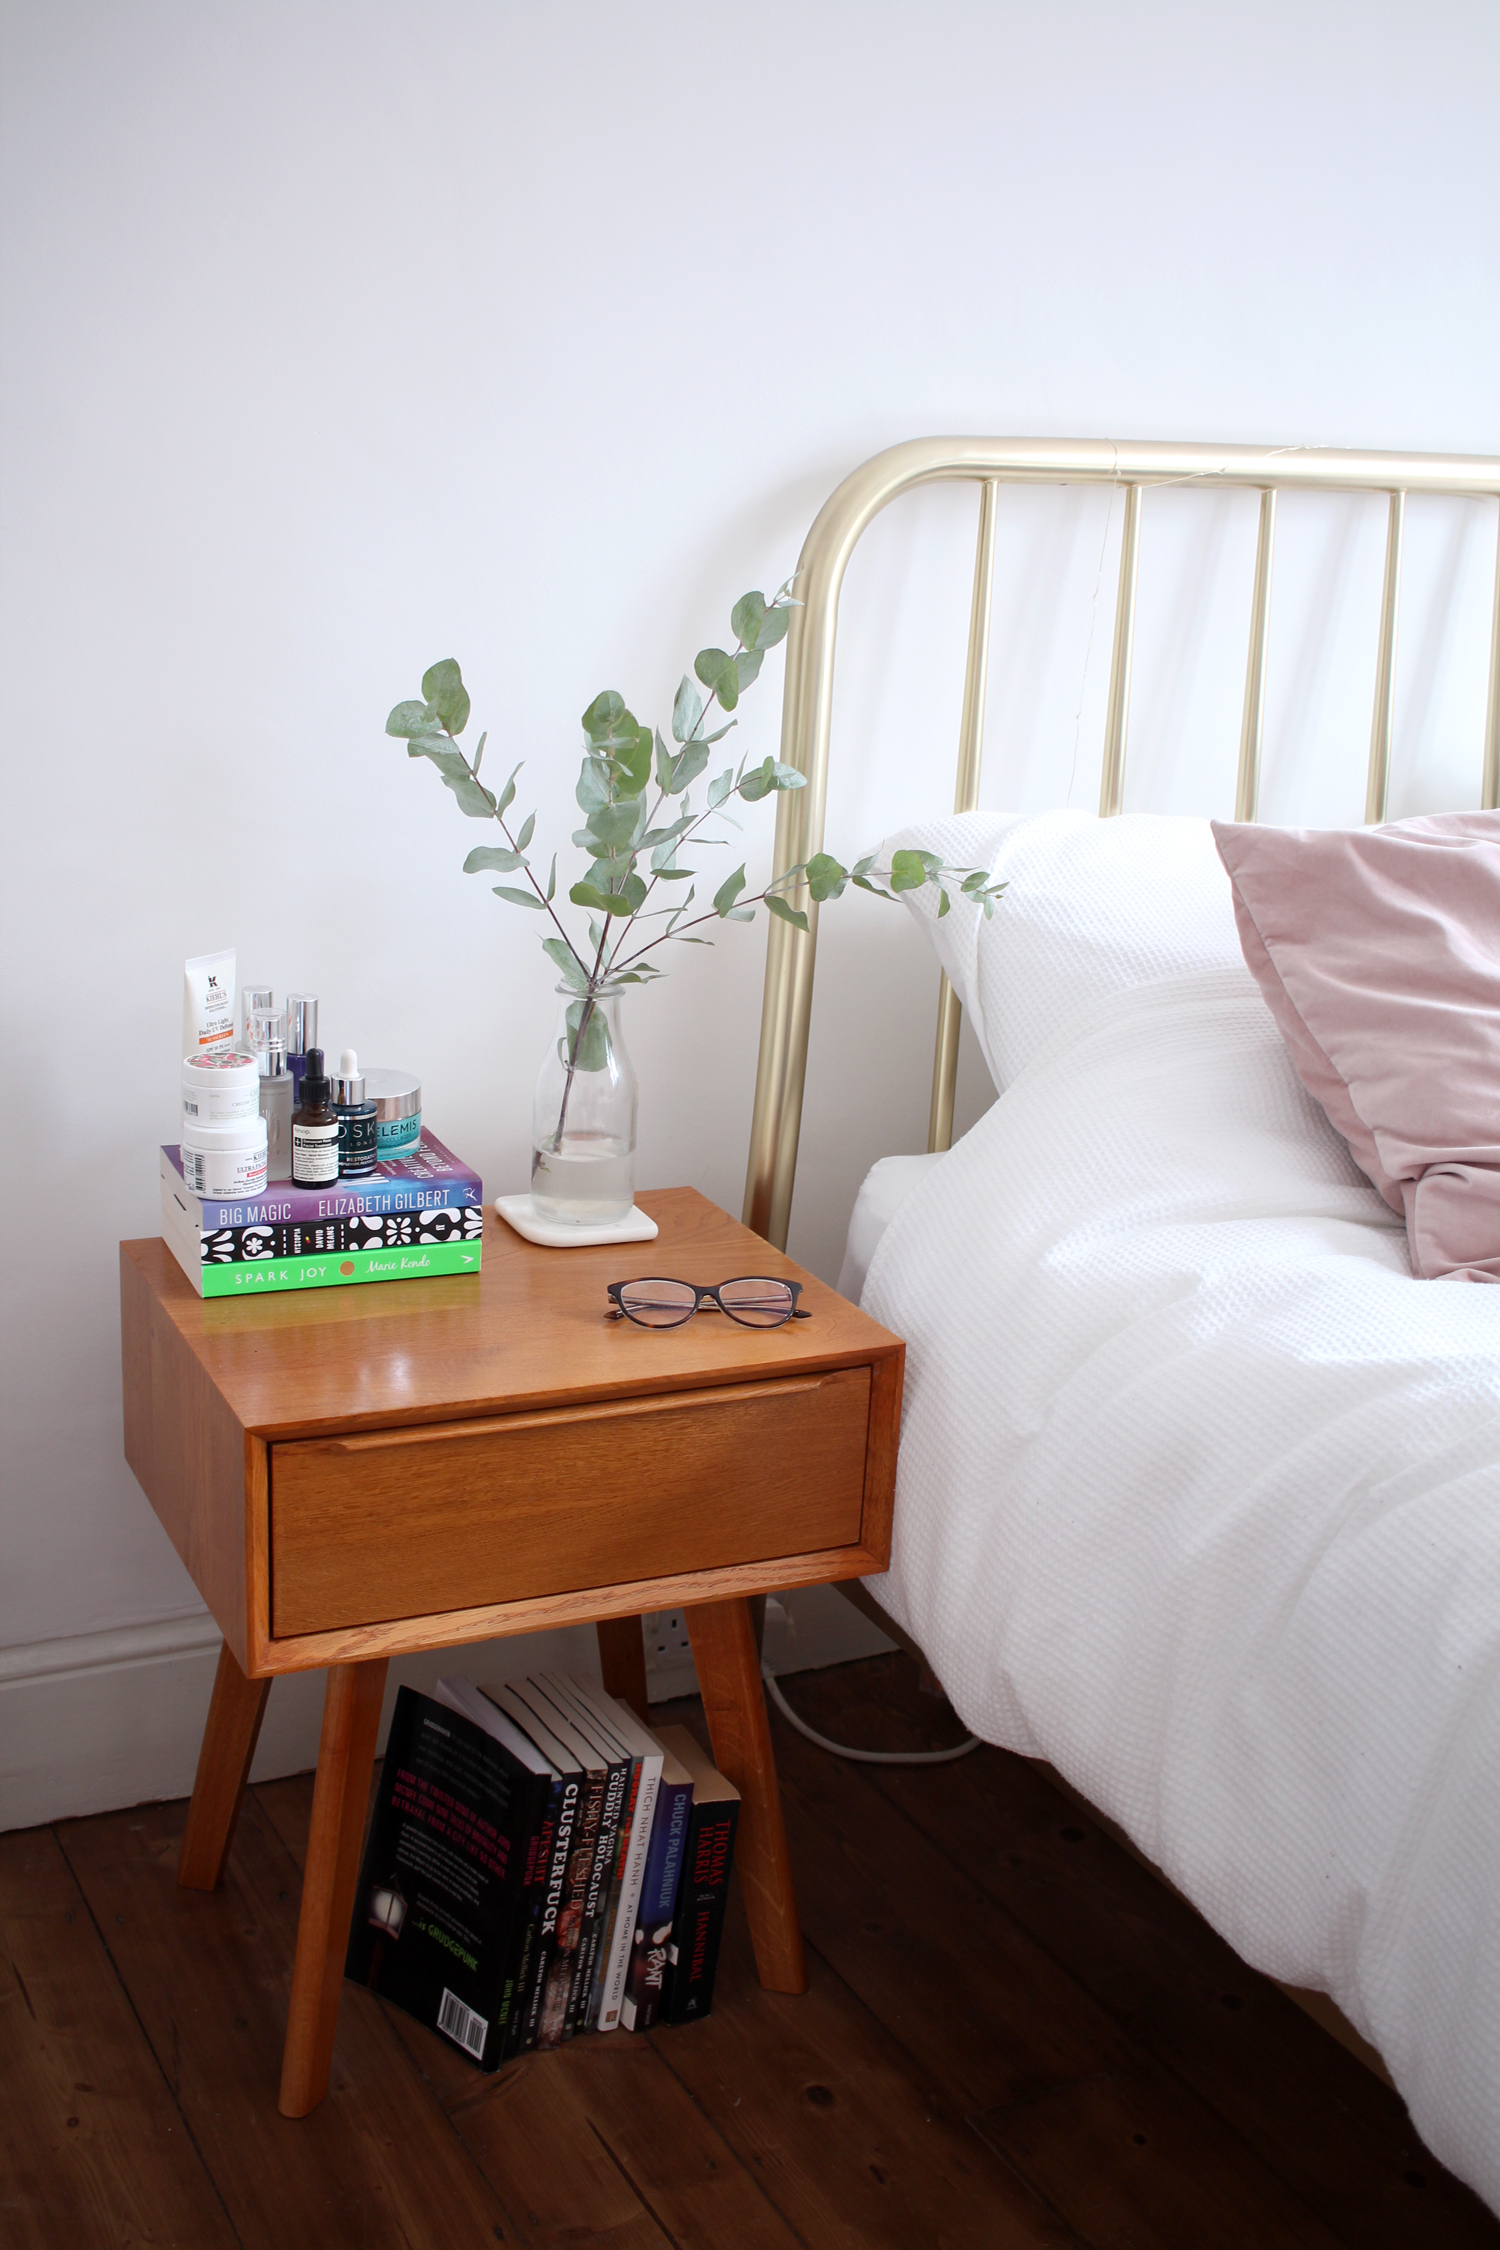 herdy-sleep-mattress-review-bedroom-interiors-blog-5